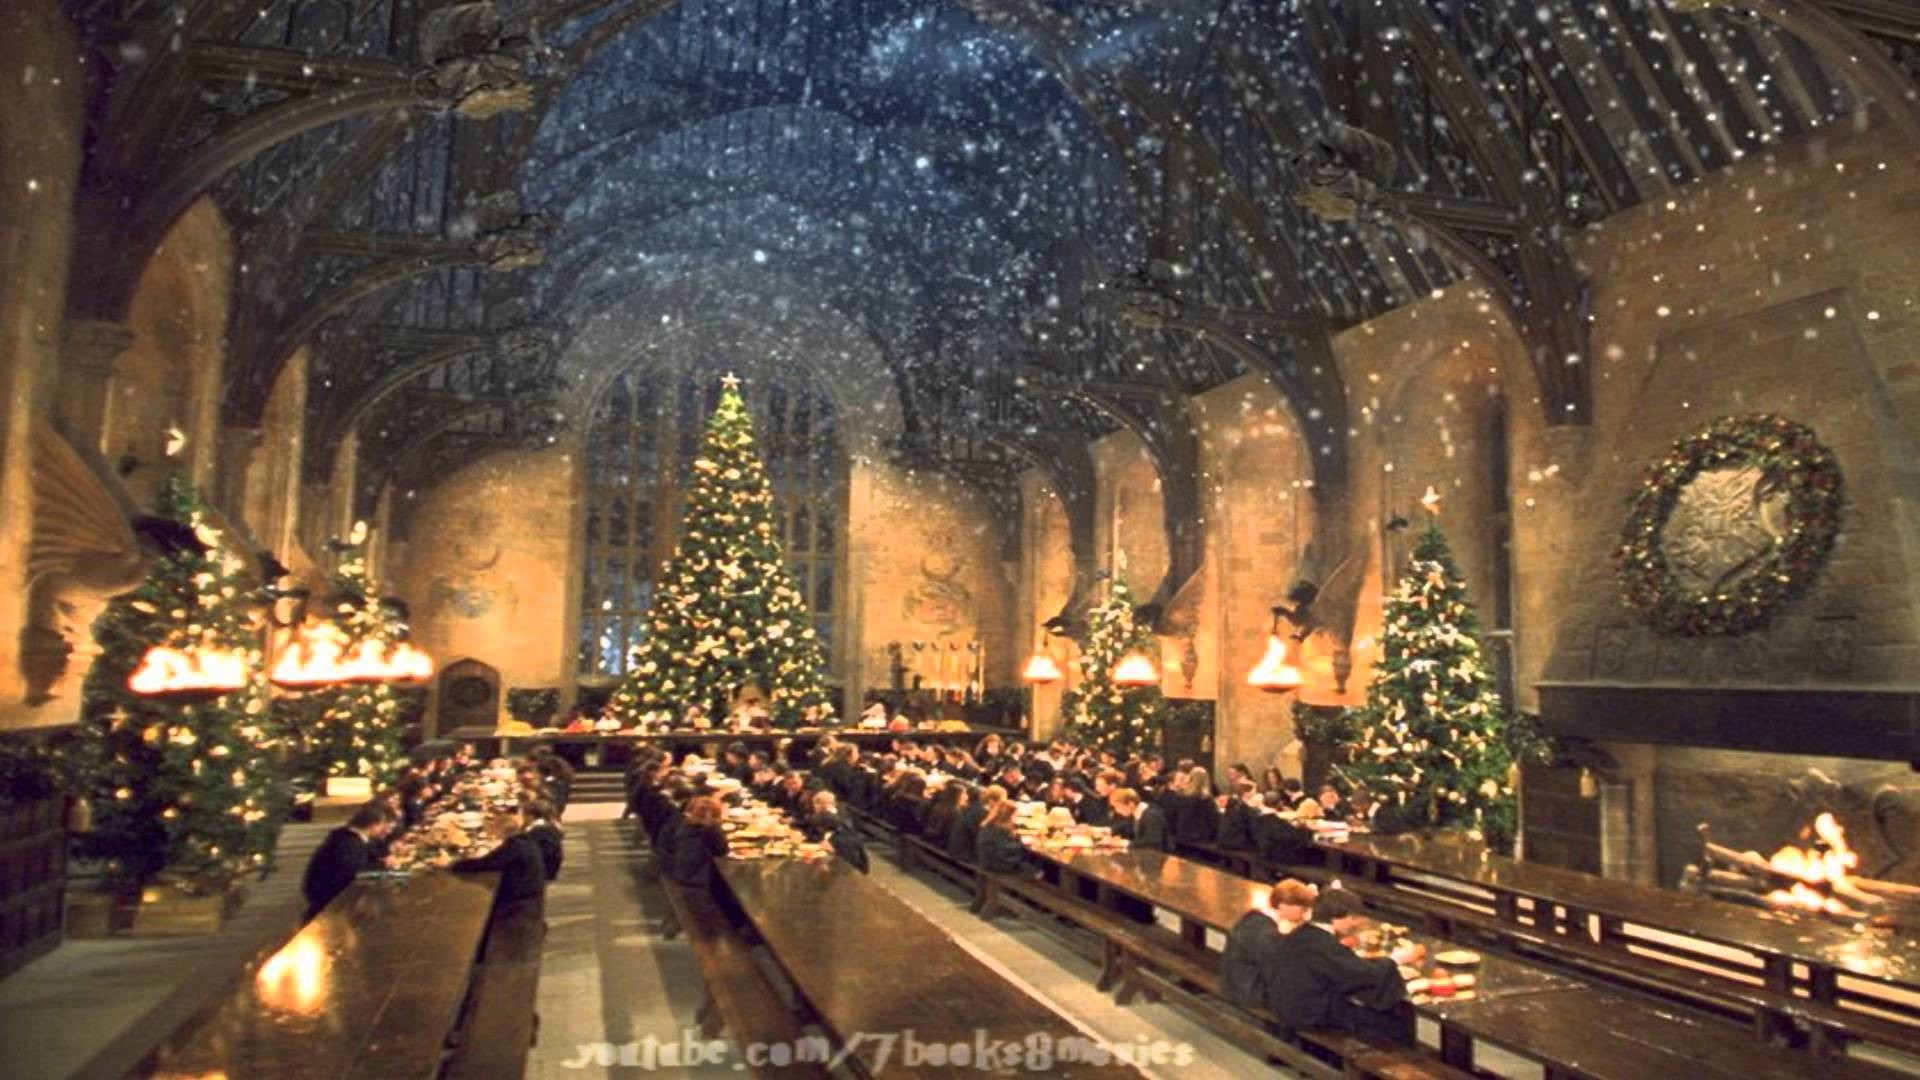 … Fantastic Christmas Harry Potter Movies Widescreen Wallpapers 1920×1080  pixels We Try to Present Christmas